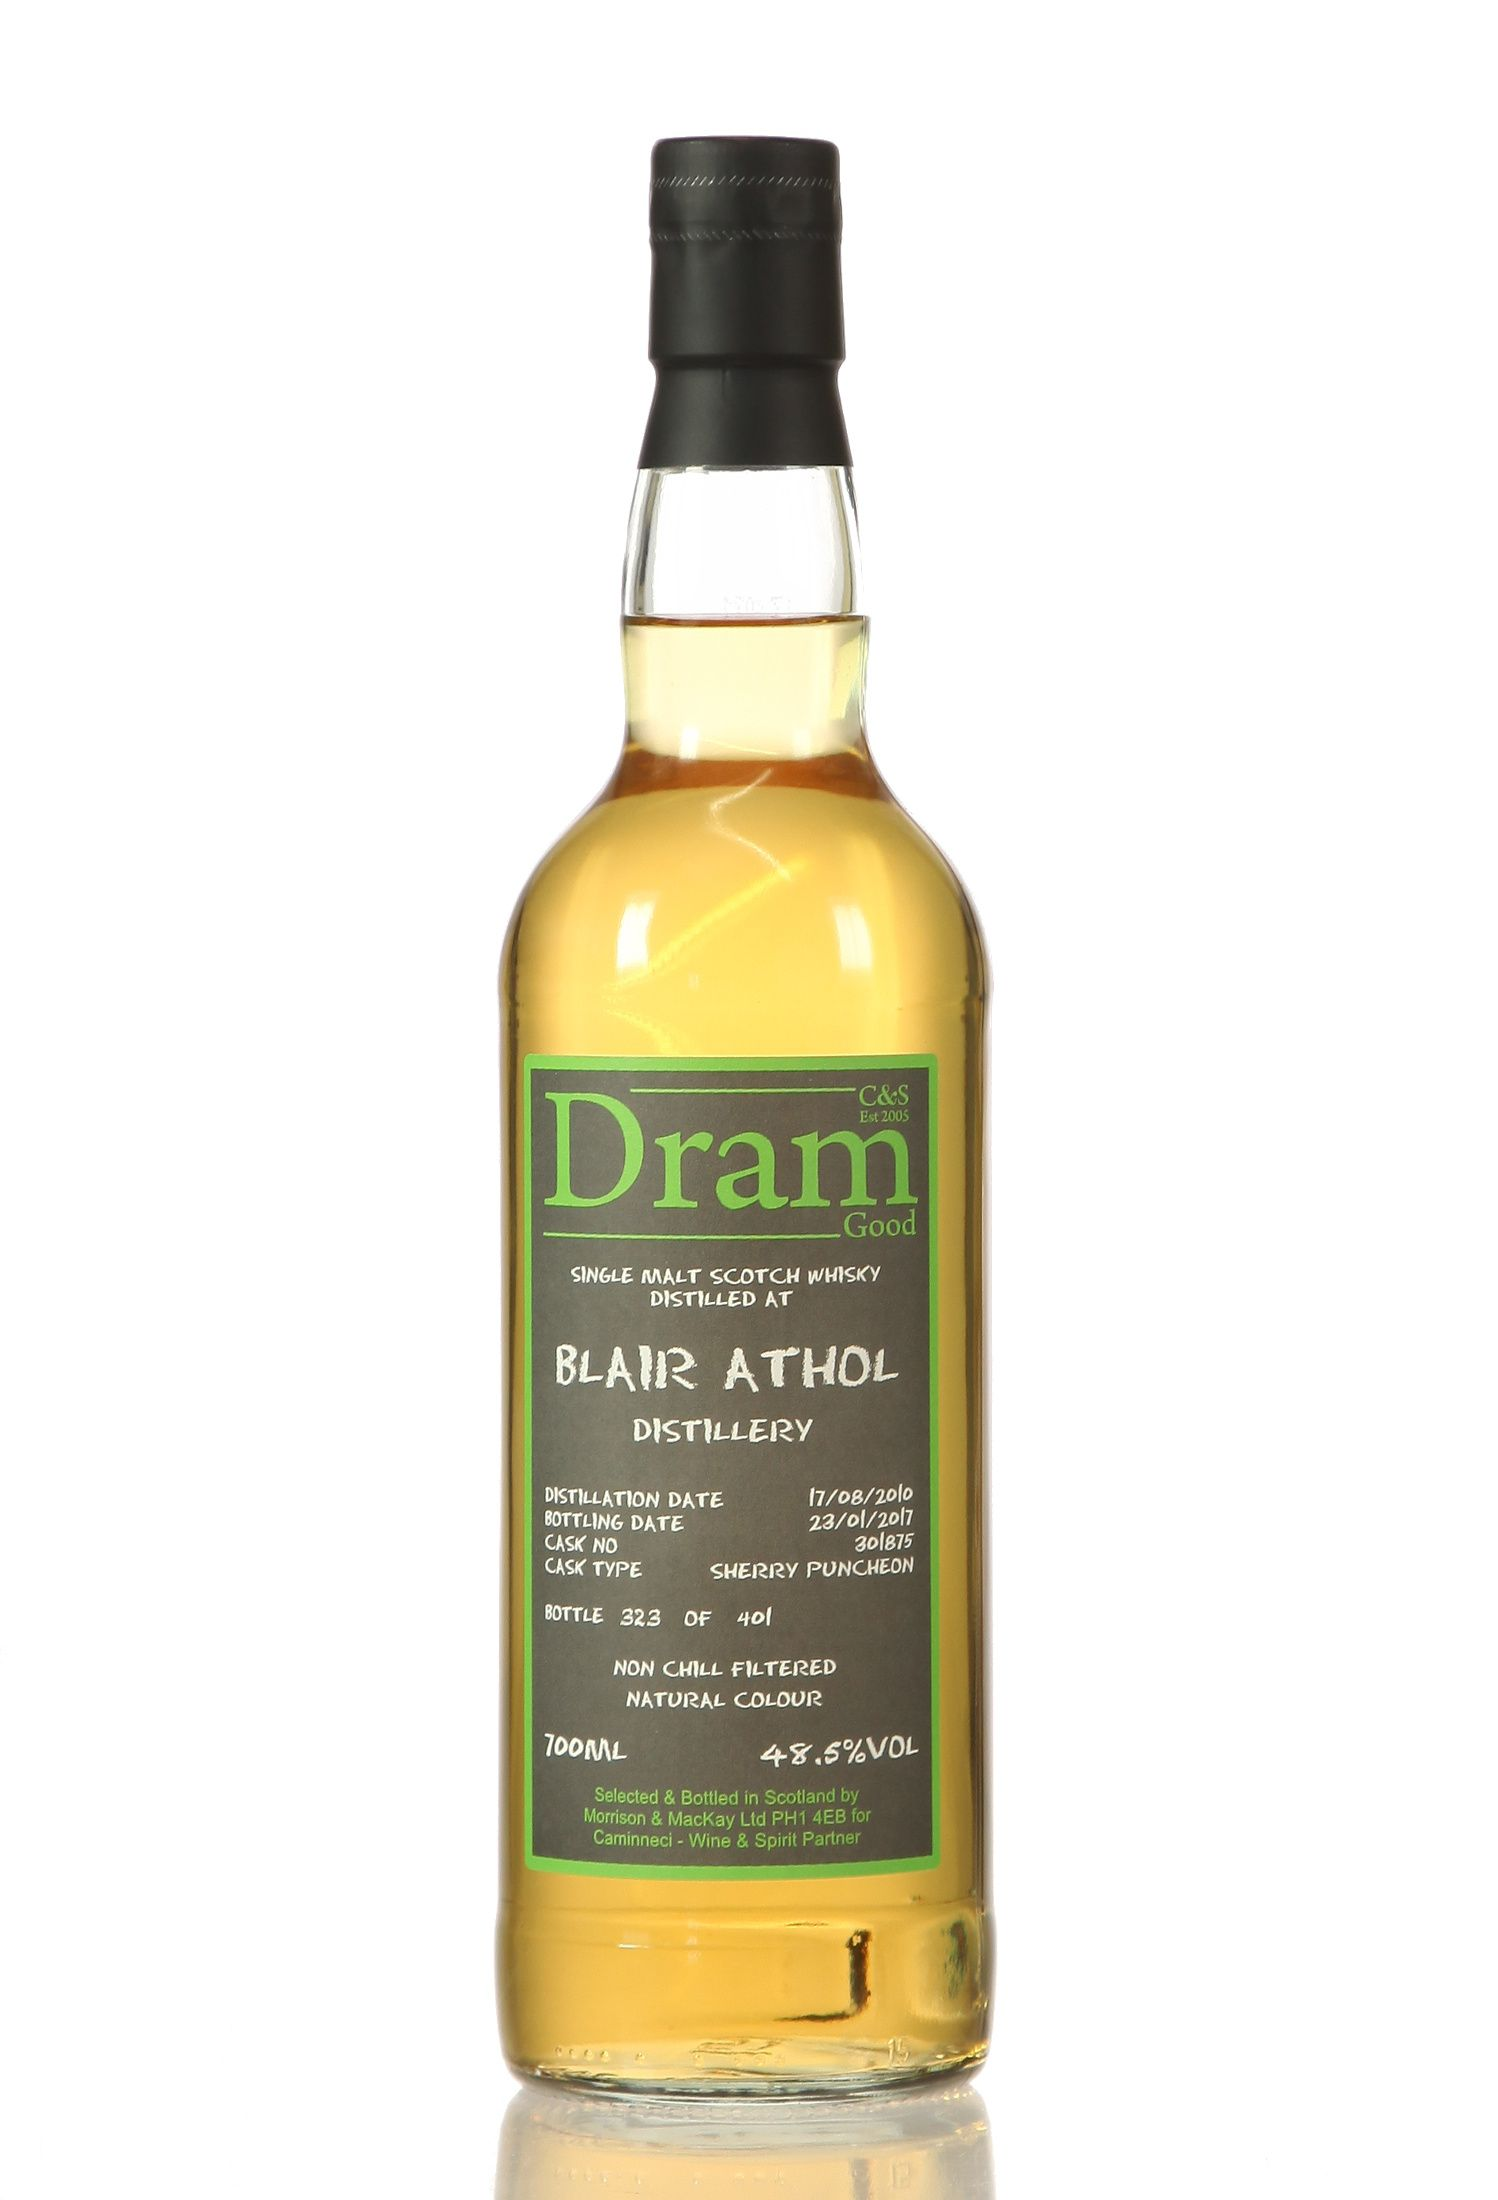 Blair Athol Dram Good